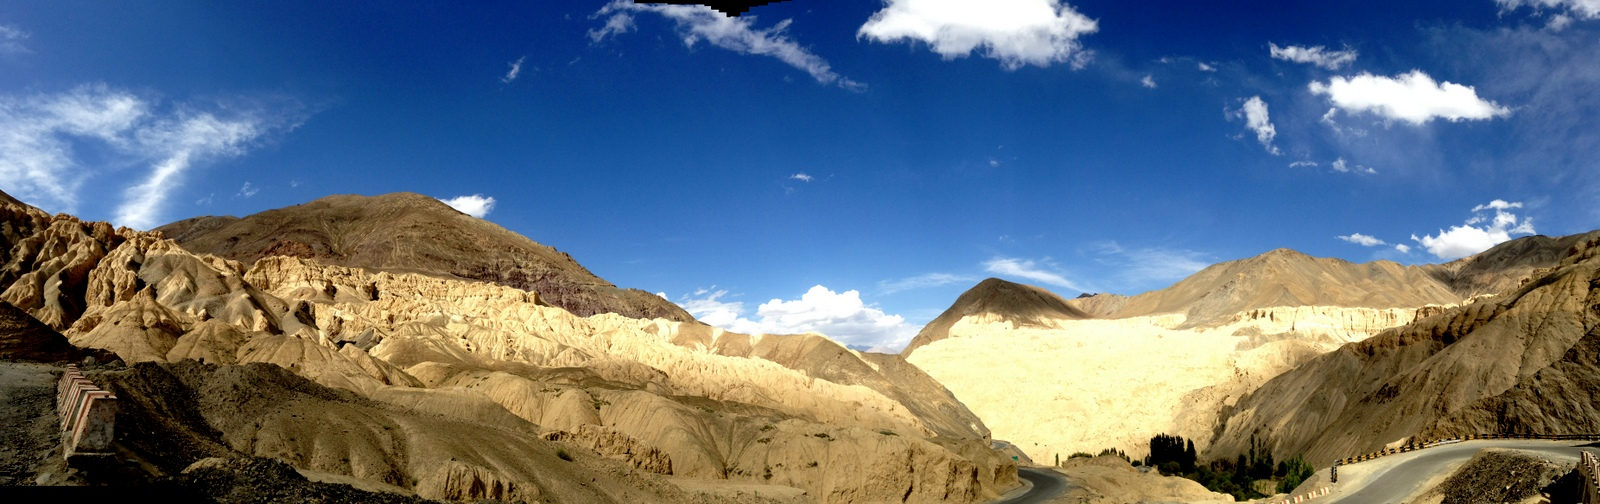 Ladakh landscape photos